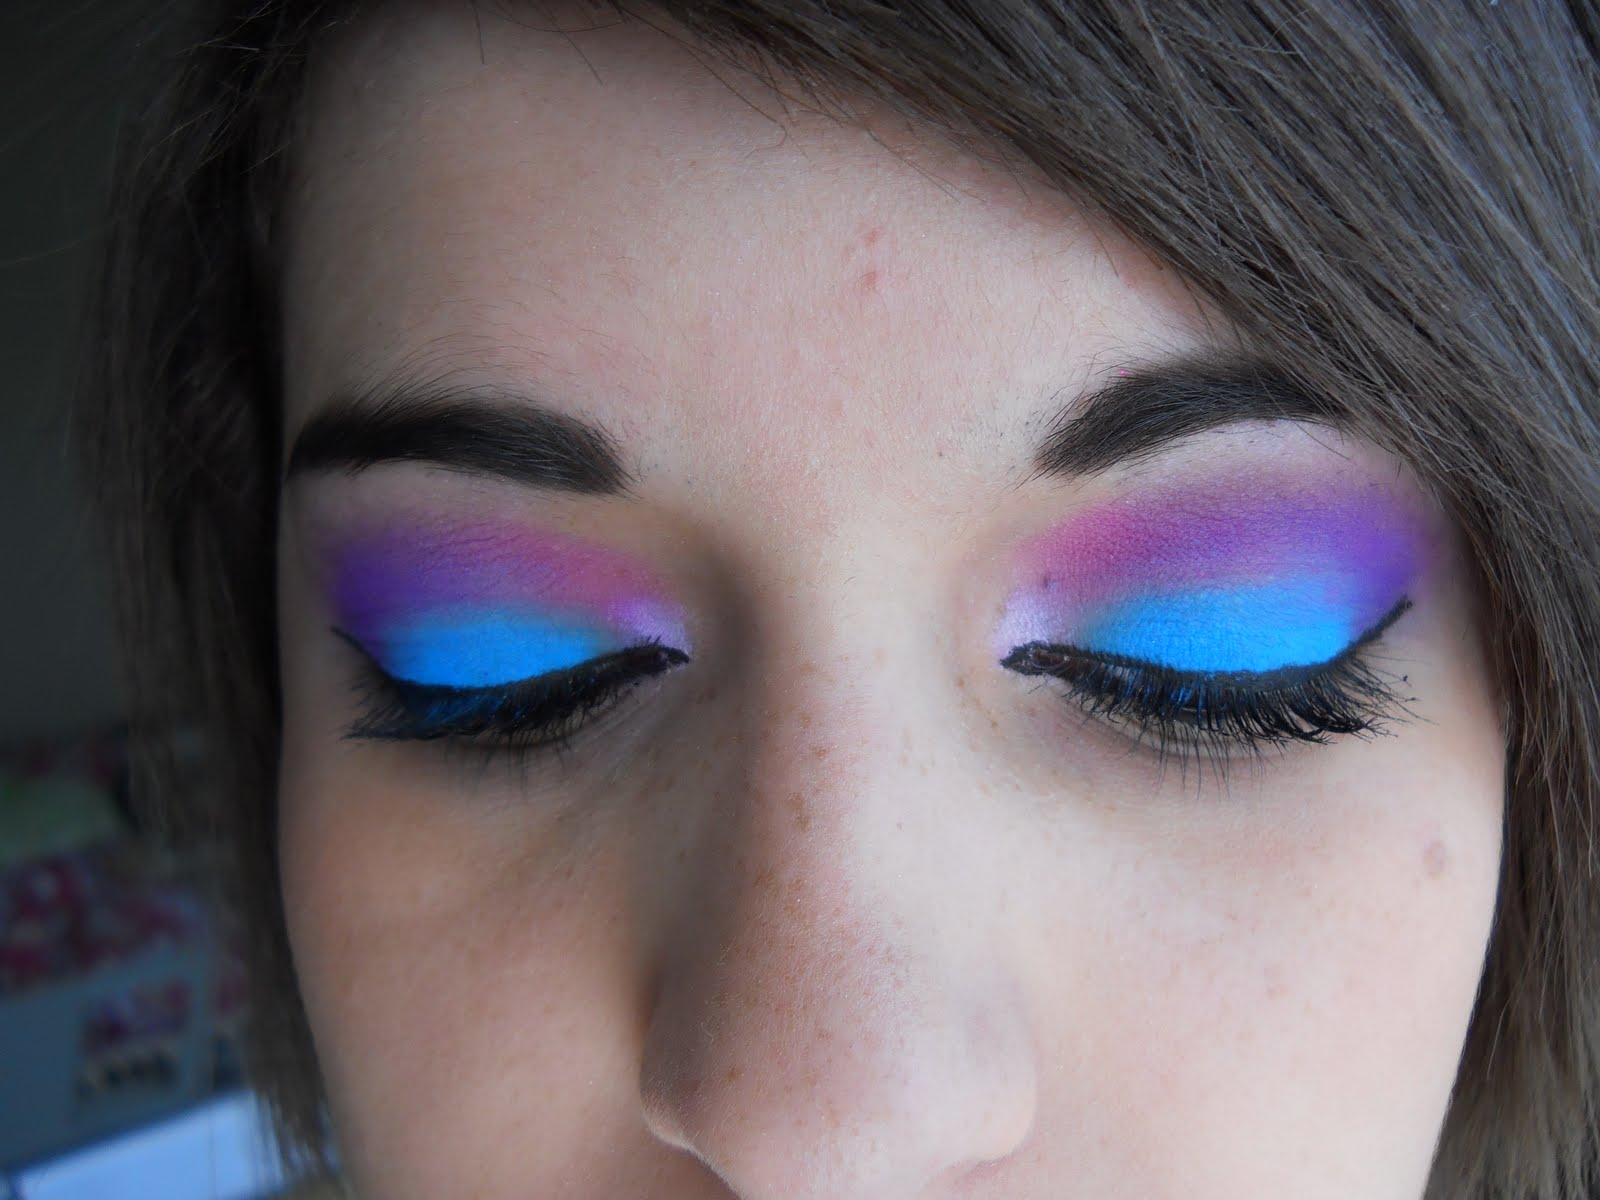 Rave girls makeup